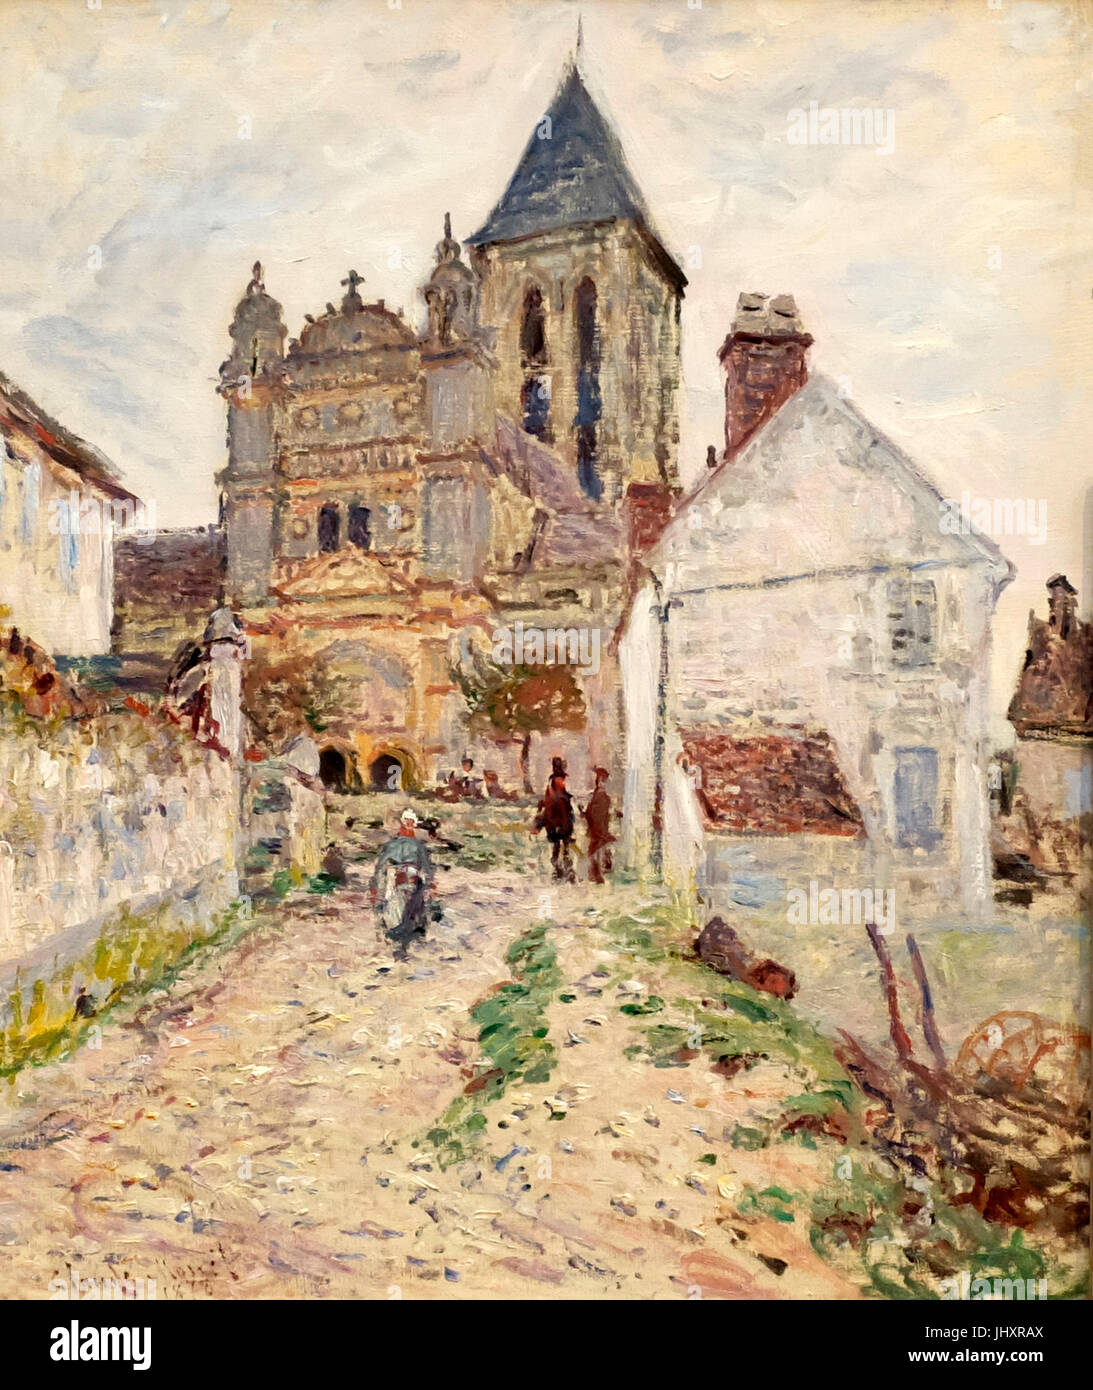 The Church at Vetheuil - Claude Monet, circa 1878 - Stock Image